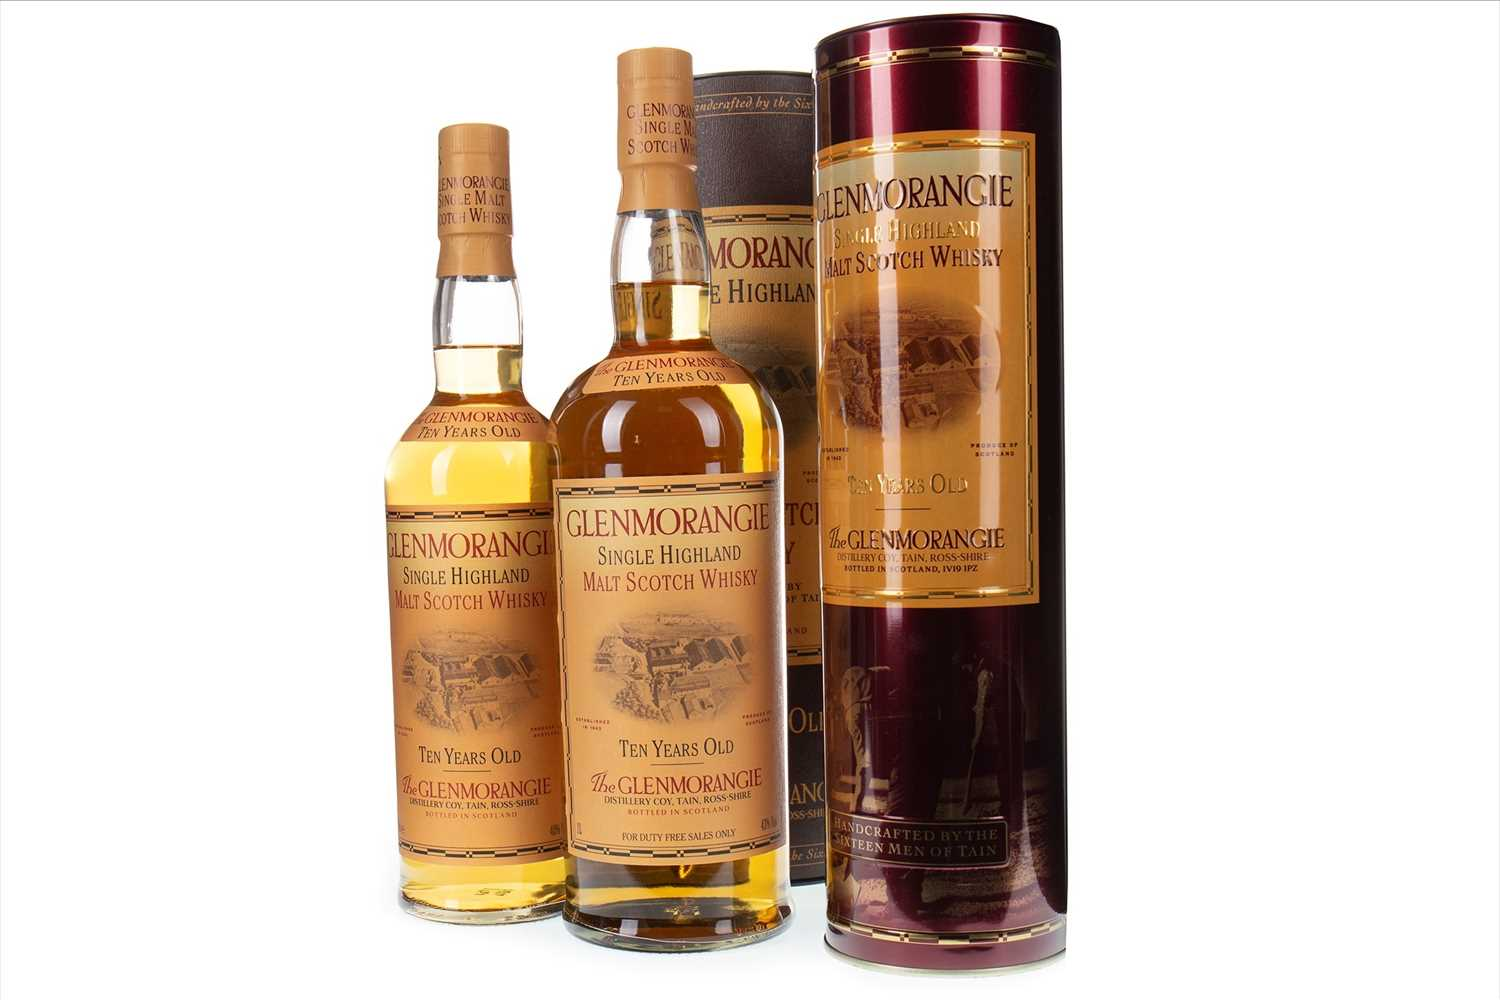 Lot 314-ONE LITRE AND 70CL OF GLENMORANGIE 10 YEARS OLD